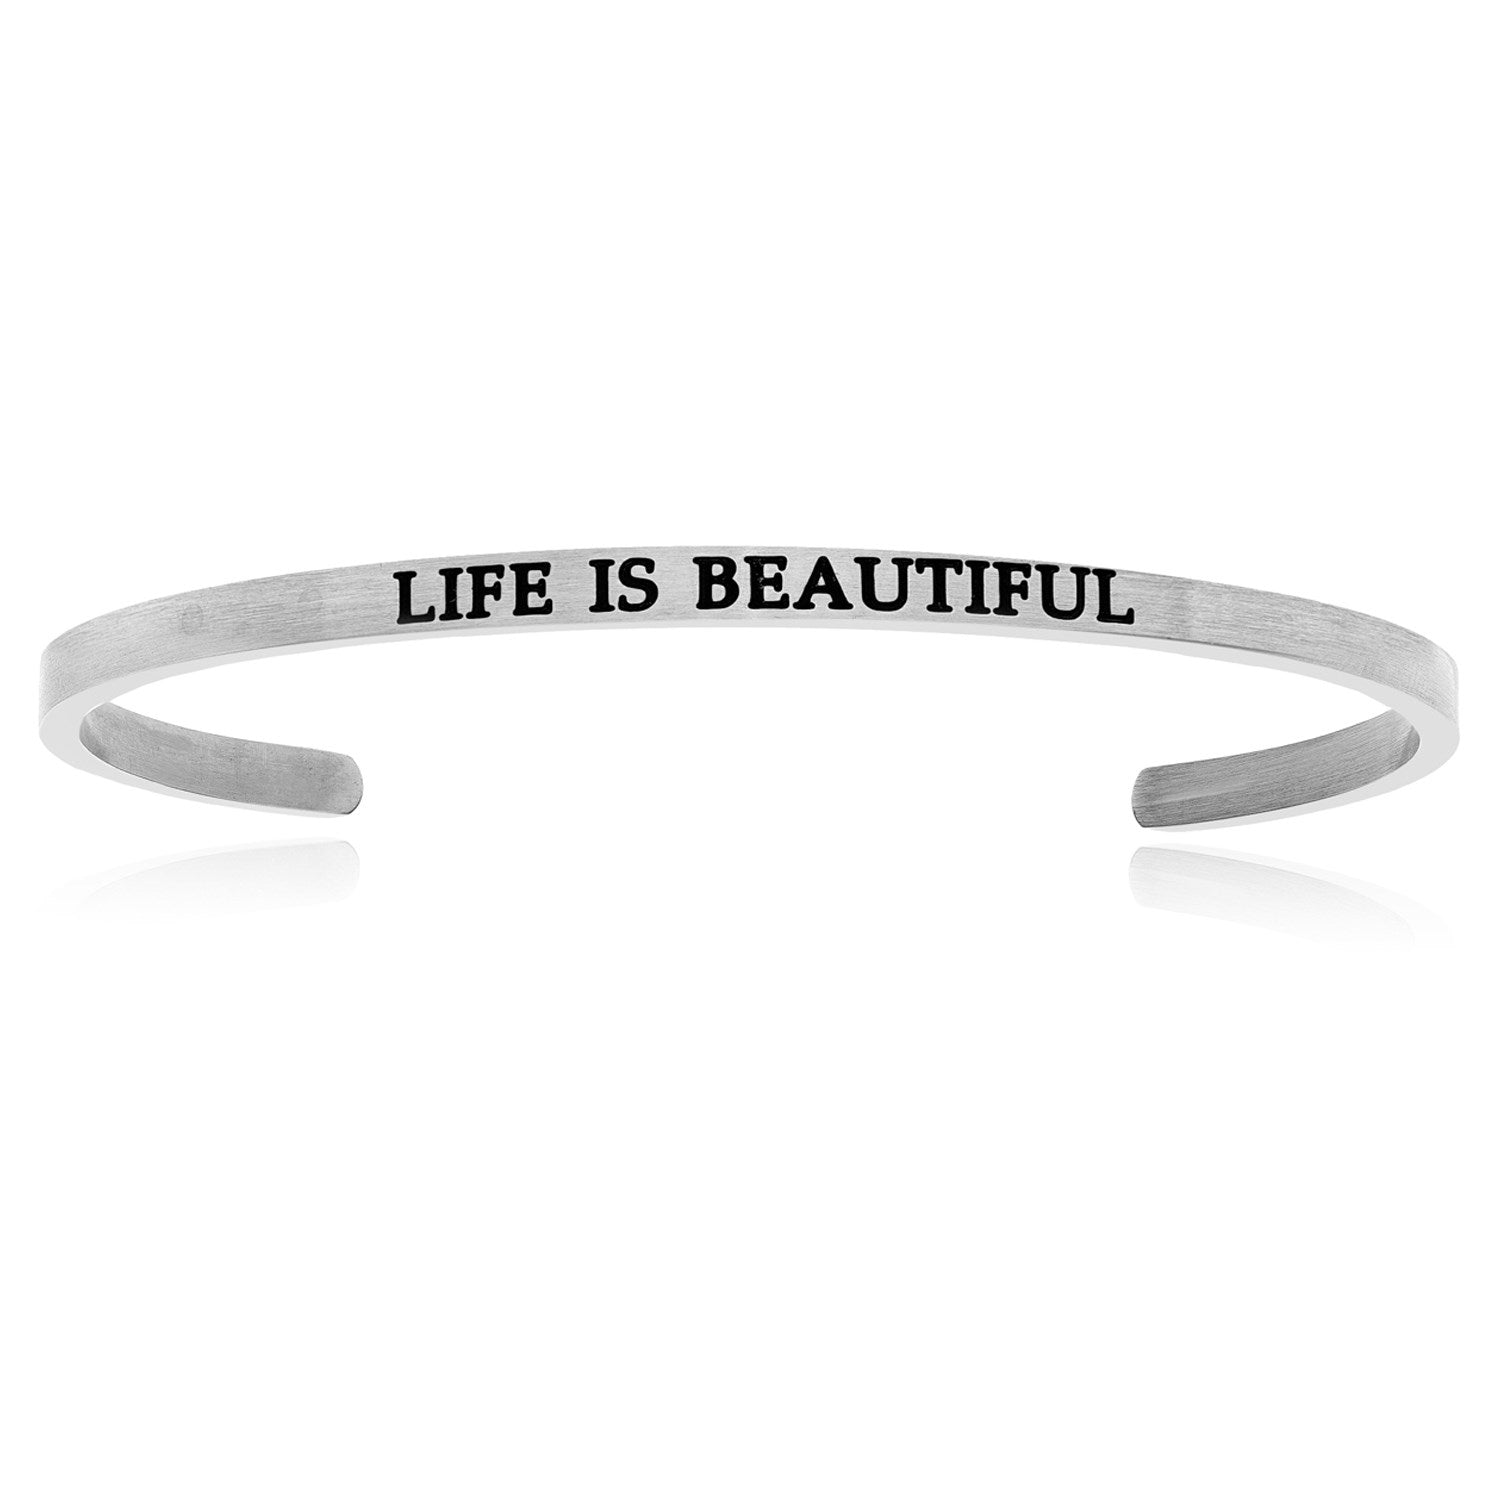 Stainless Steel Life Is Beautiful Cuff Bracelet